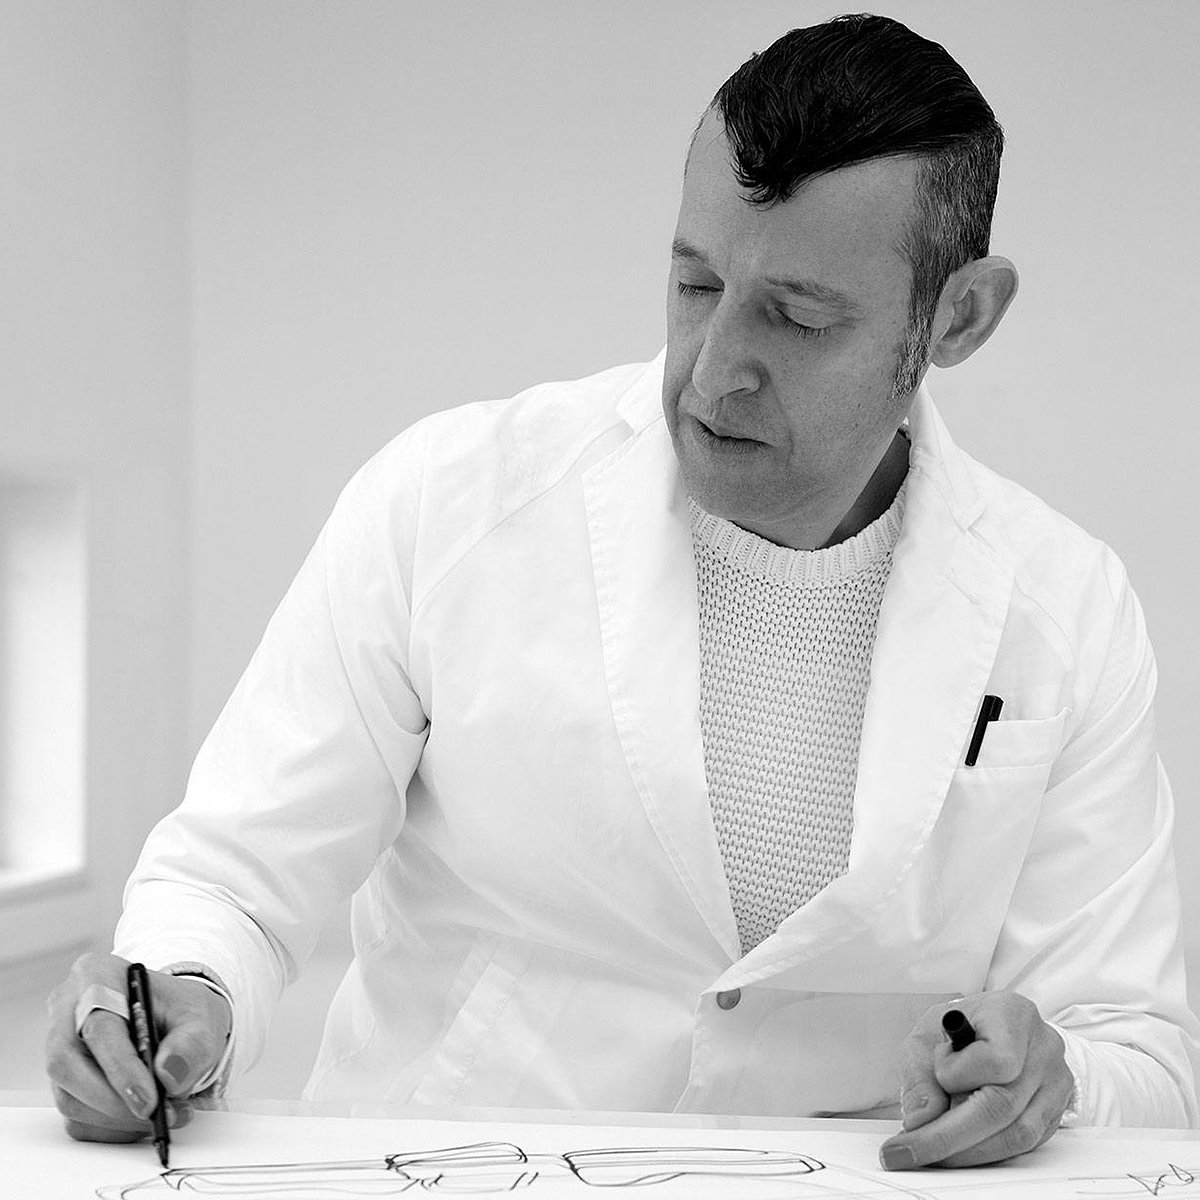 Karim Rashid Wins 2020 American Prize for Design